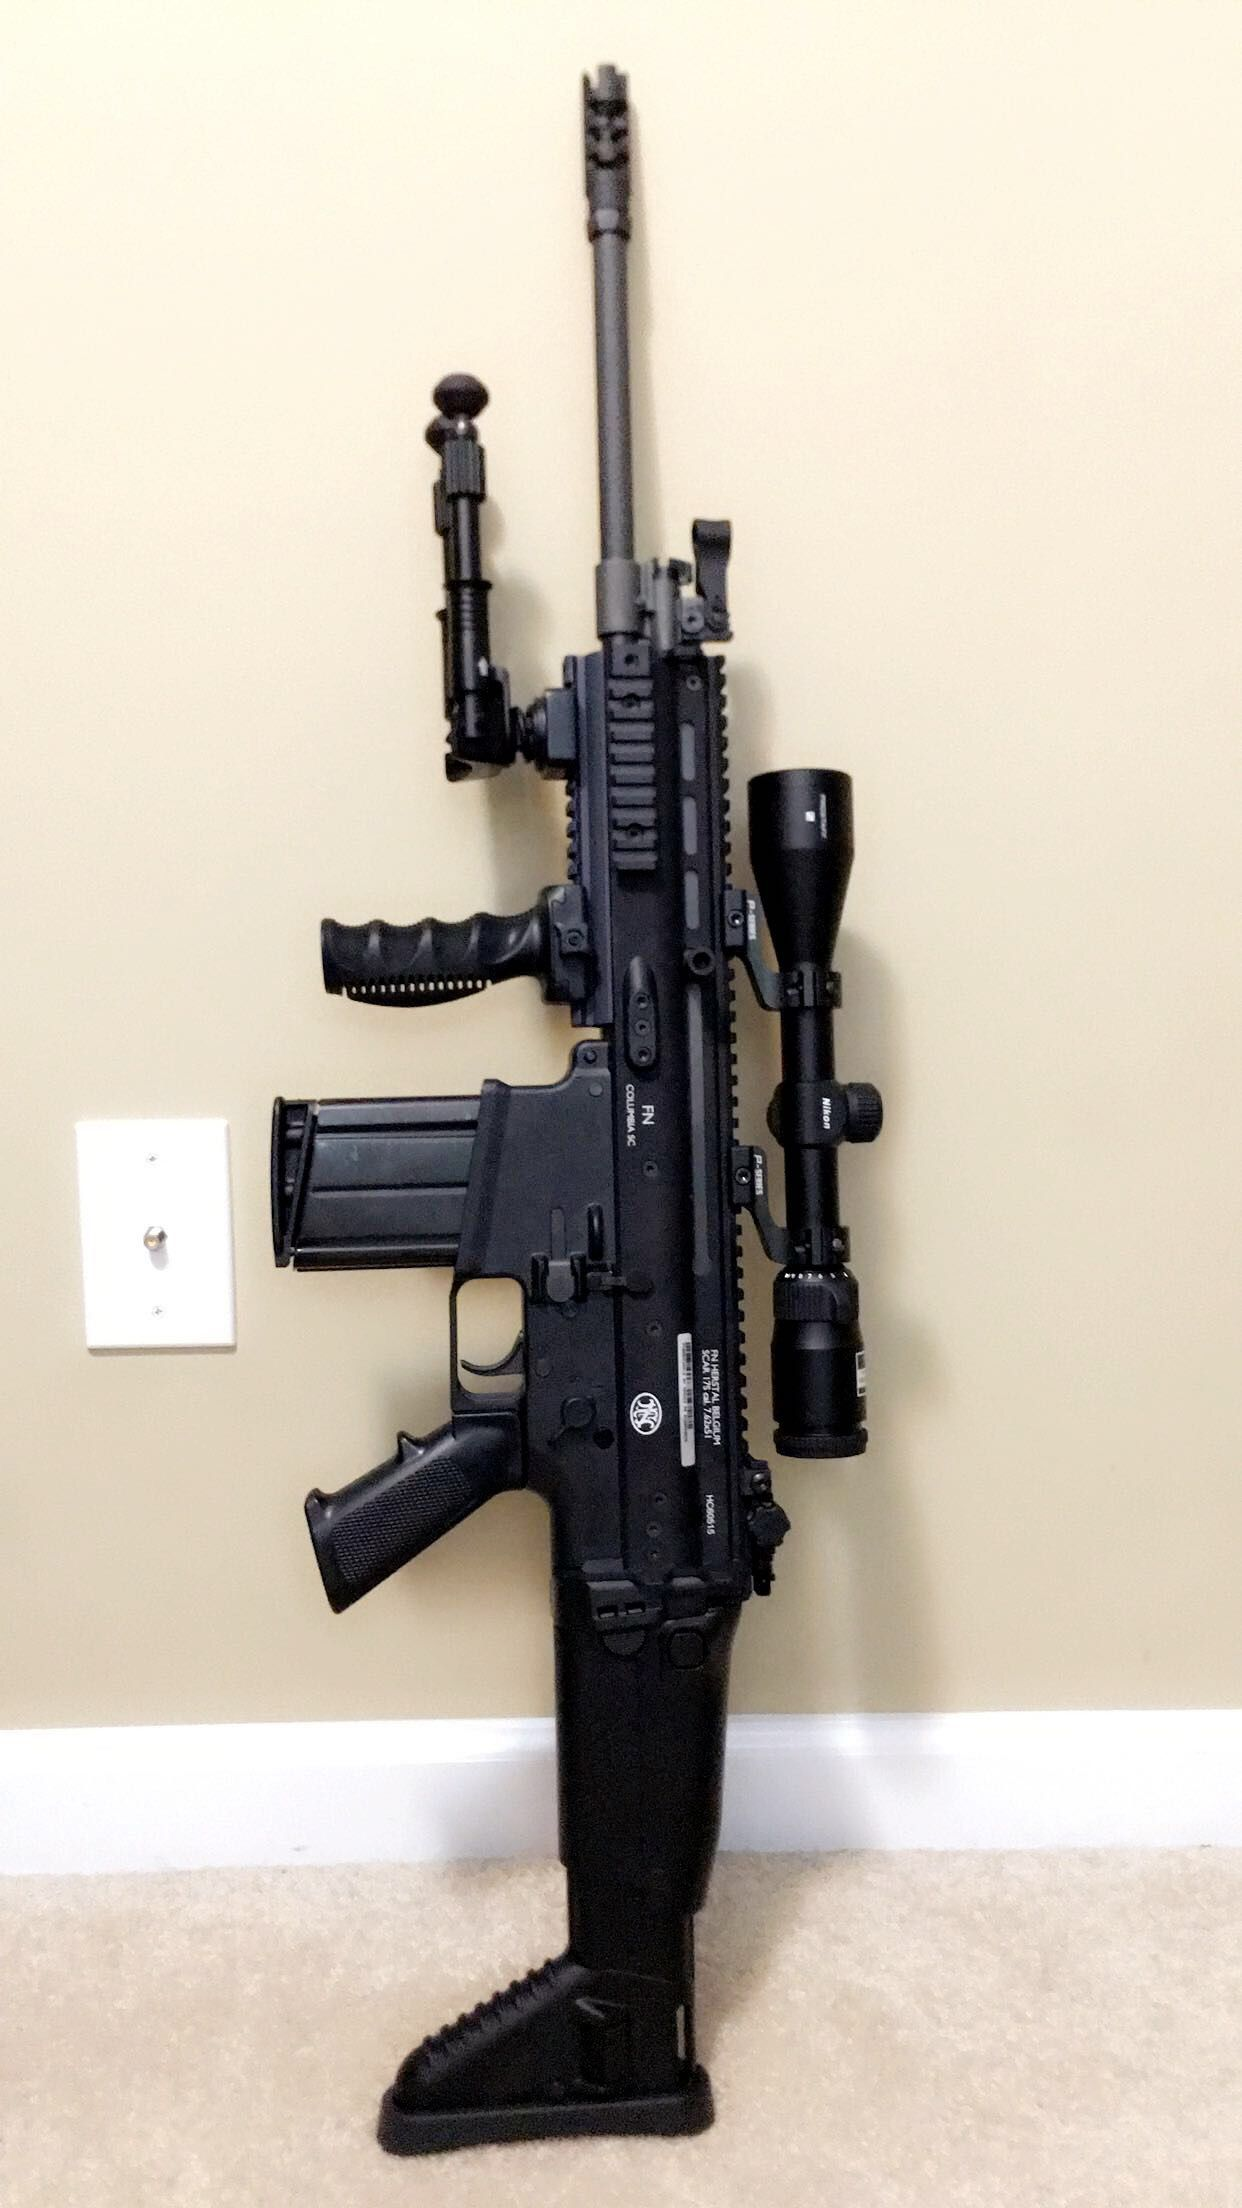 Fn Scar 17s 308 Rifle Guns Firearms Rifles Ar Pistols Pin Parts List Remington 870 Tactical Upgraded Extractor Vang Comp On